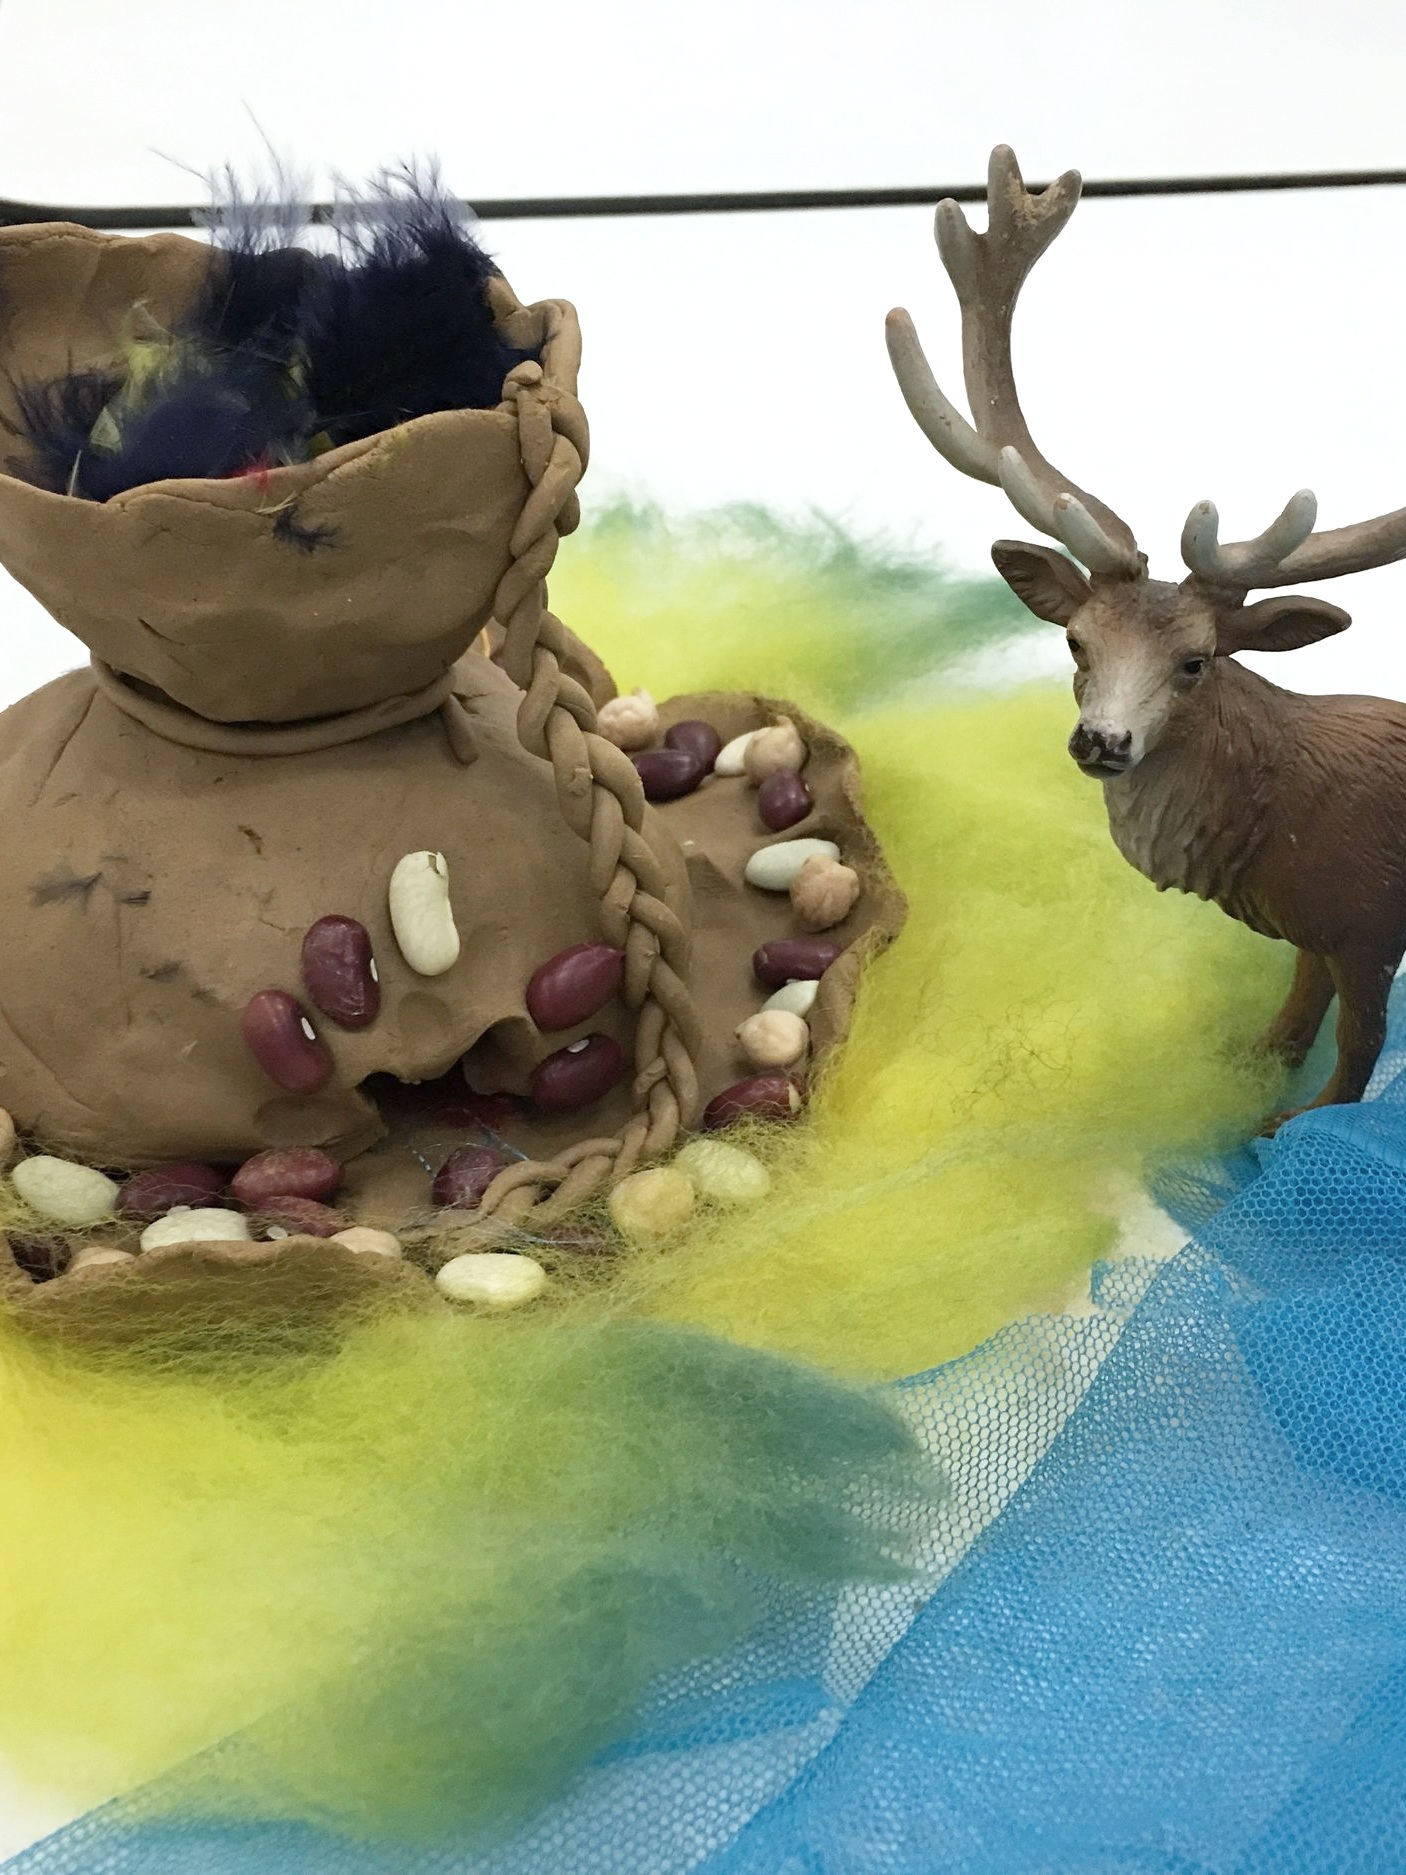 Safe Place: Fig 3 - The Deer and the Mysterious Cup